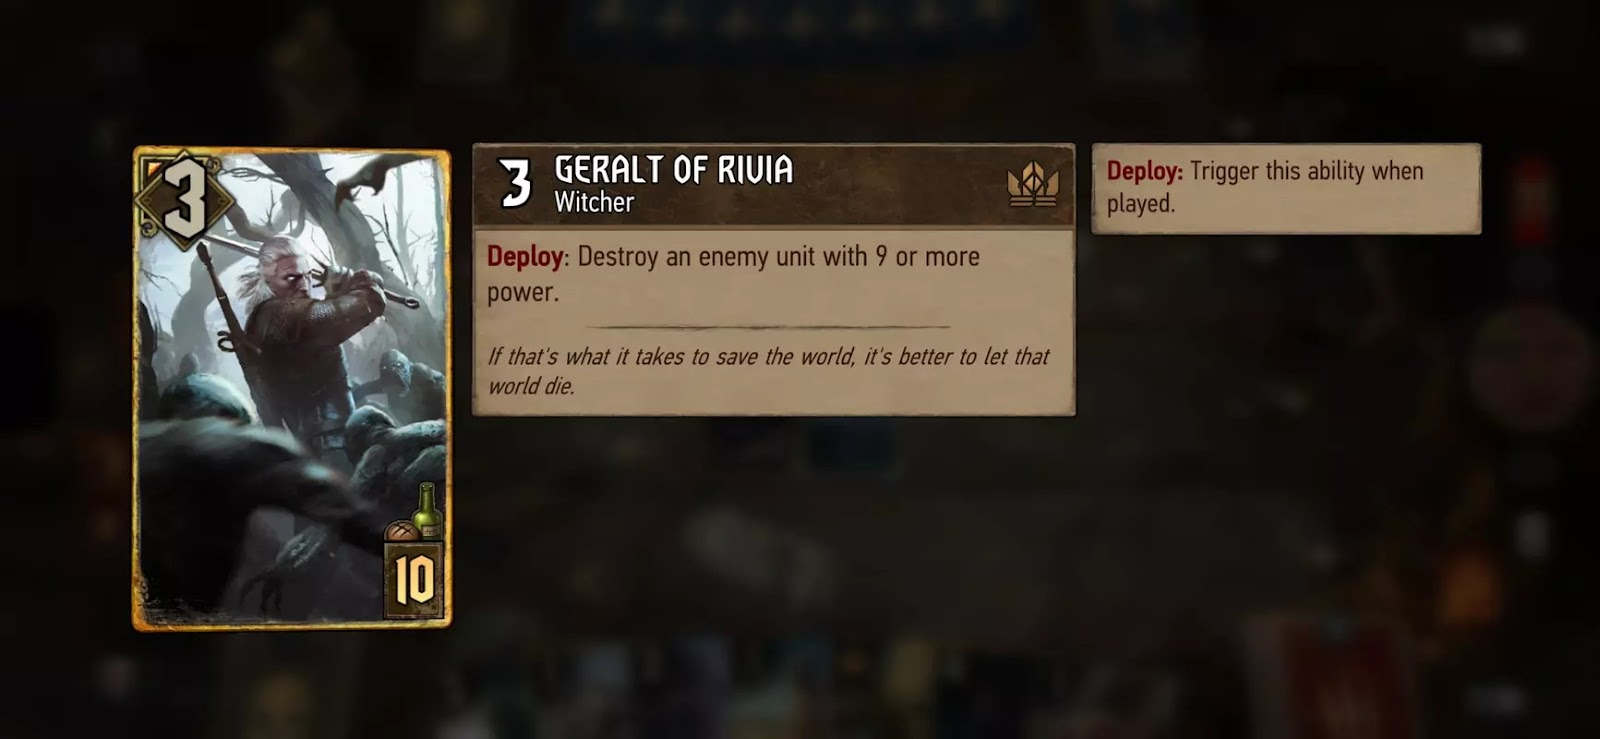 [Review] Gwent : The Witcher Card Game เกมการ์ดจากซีรีส์ The Witcher 20